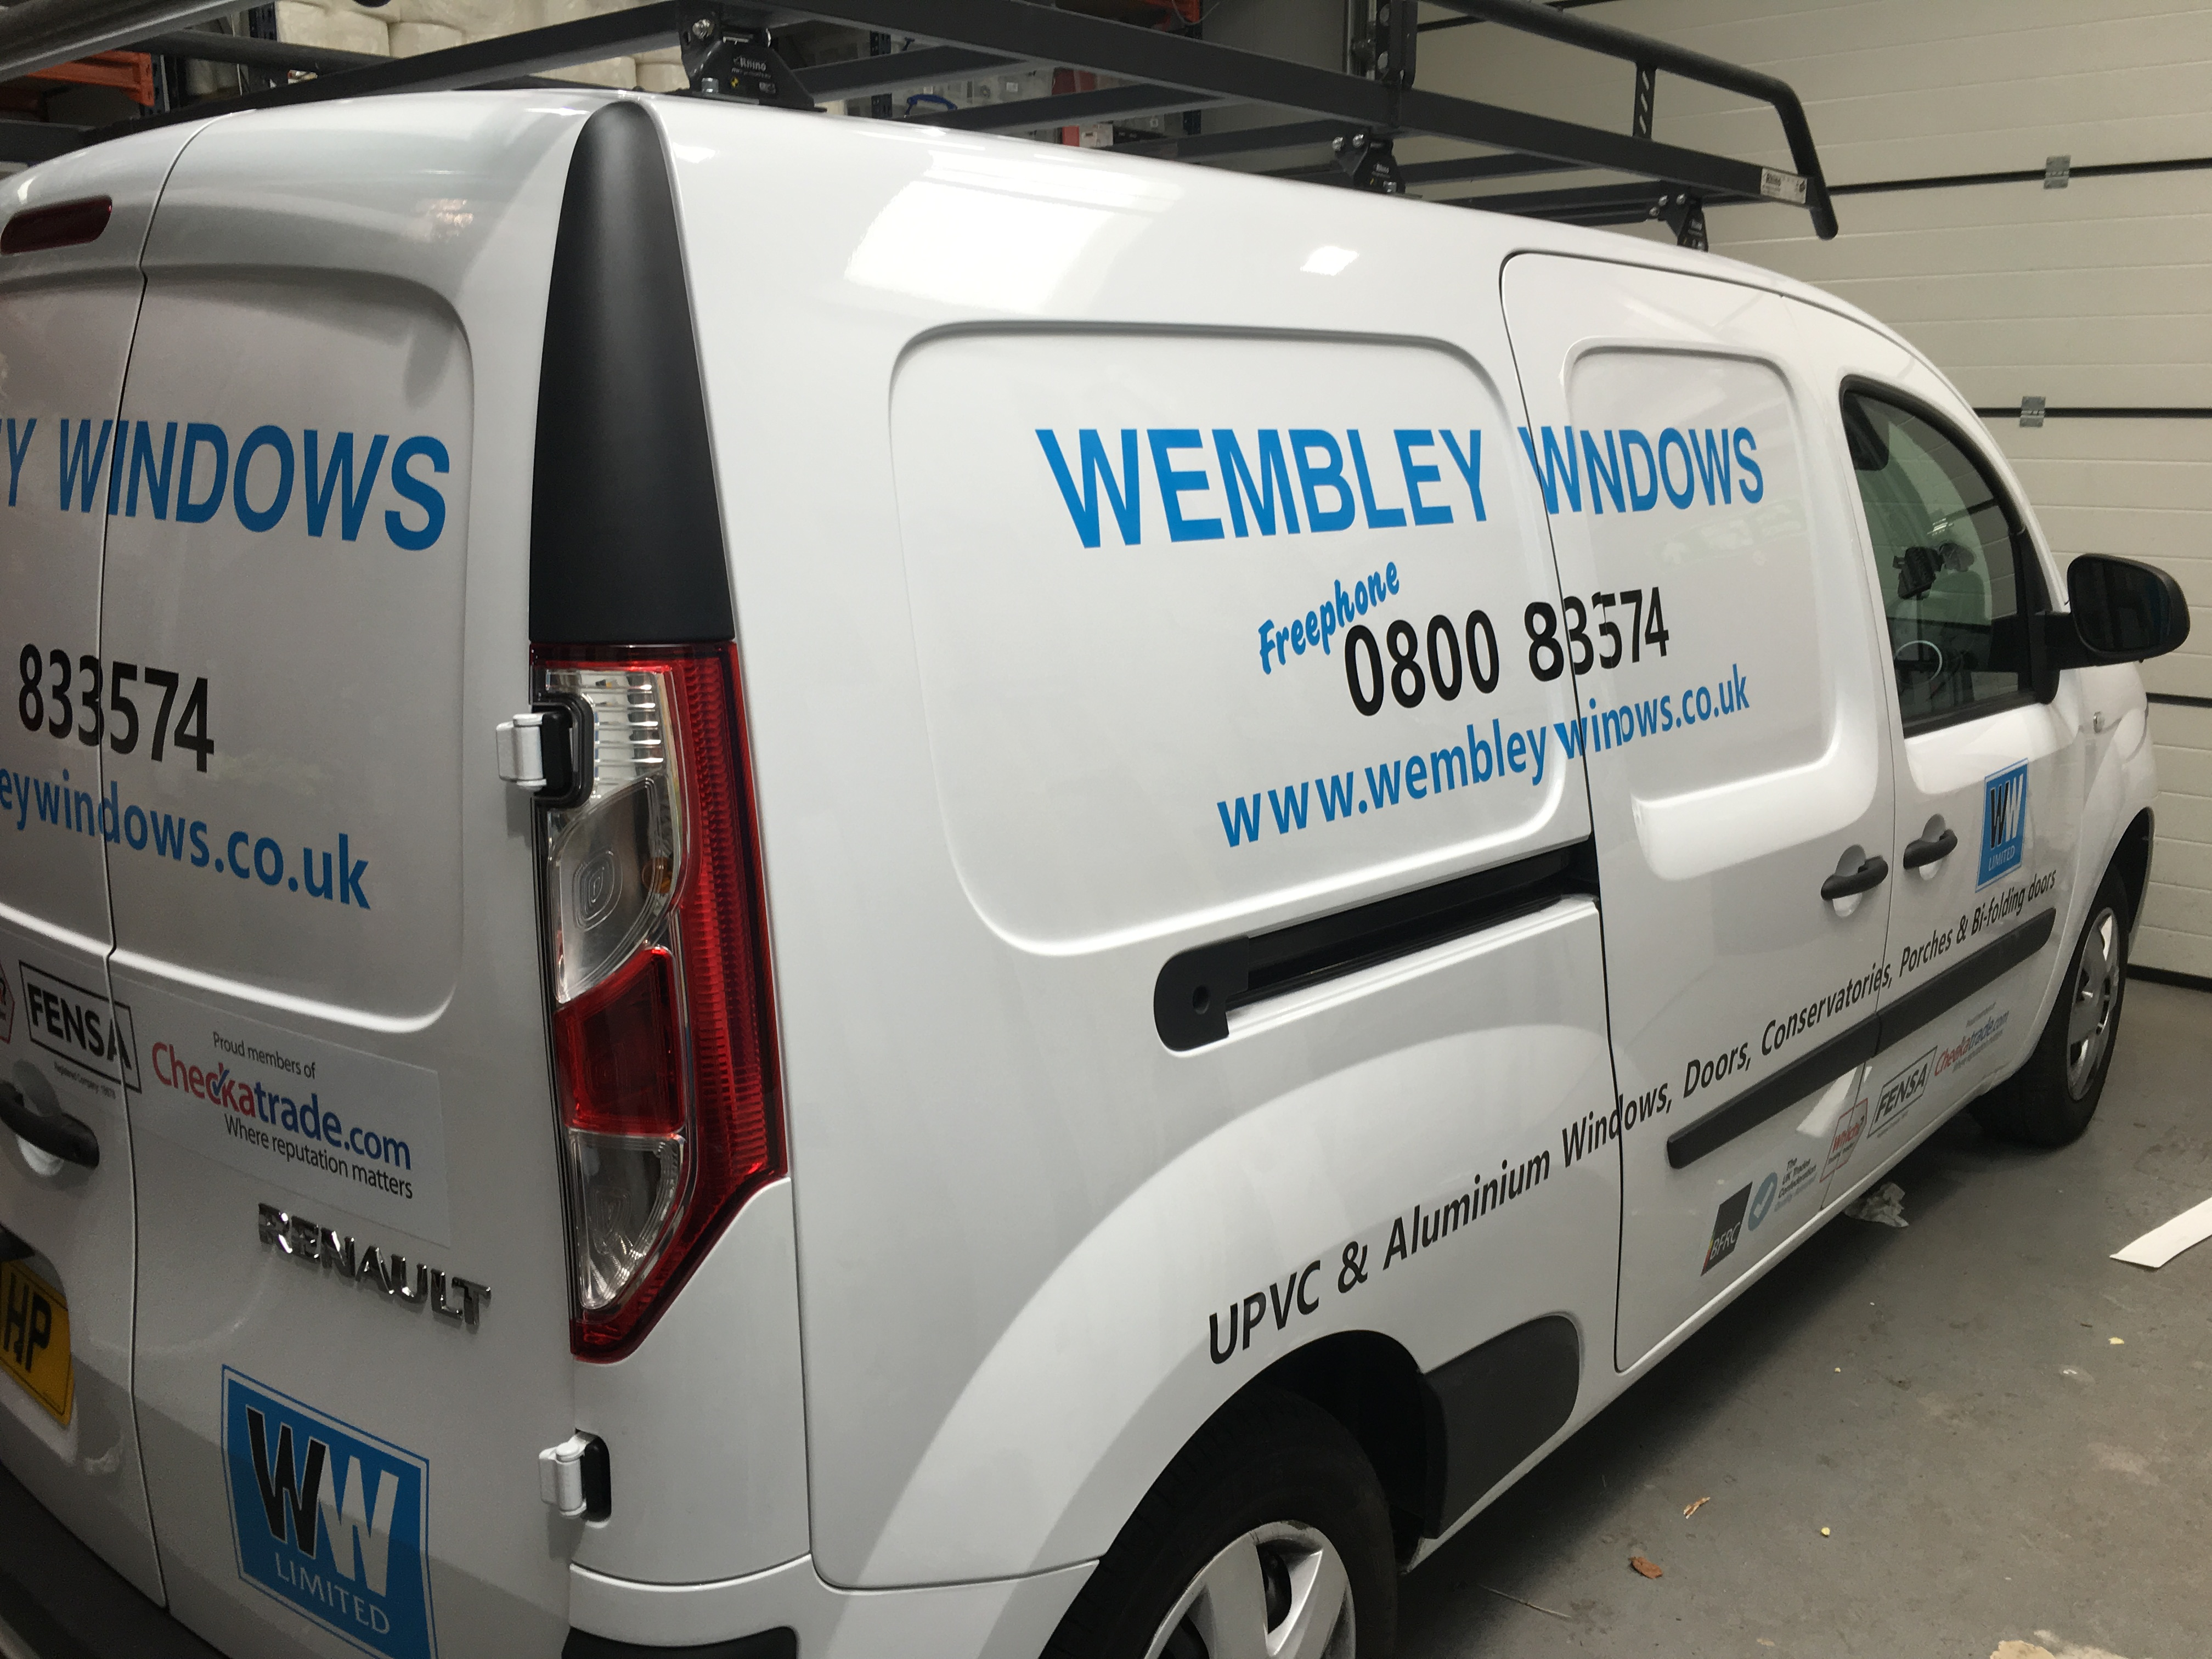 Window Fitter Van Sign Wembley Windows Action Signs